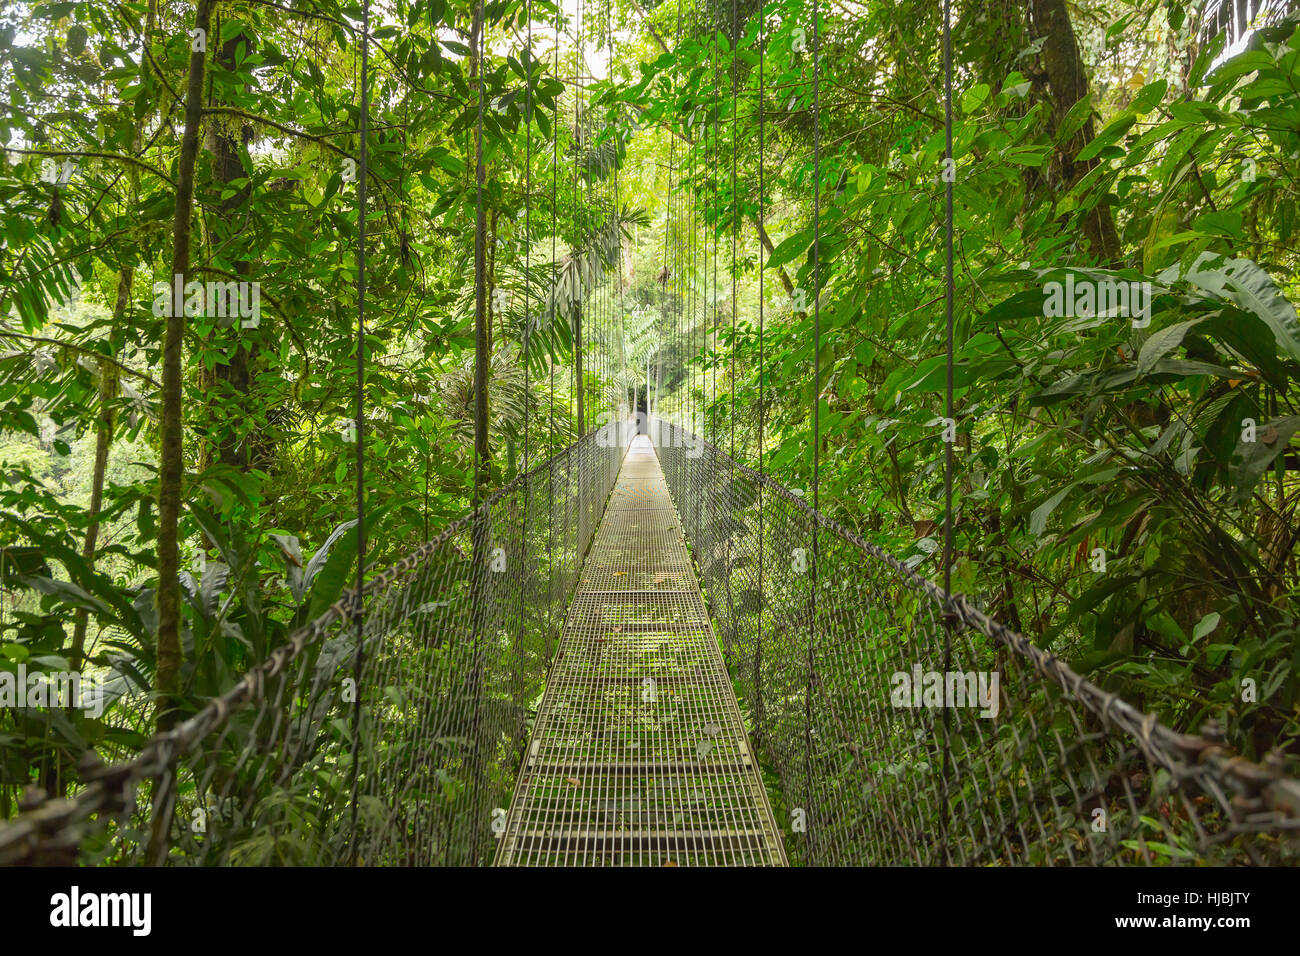 Hanging bridge at natural rainforest park in Costa Rica - Stock Image